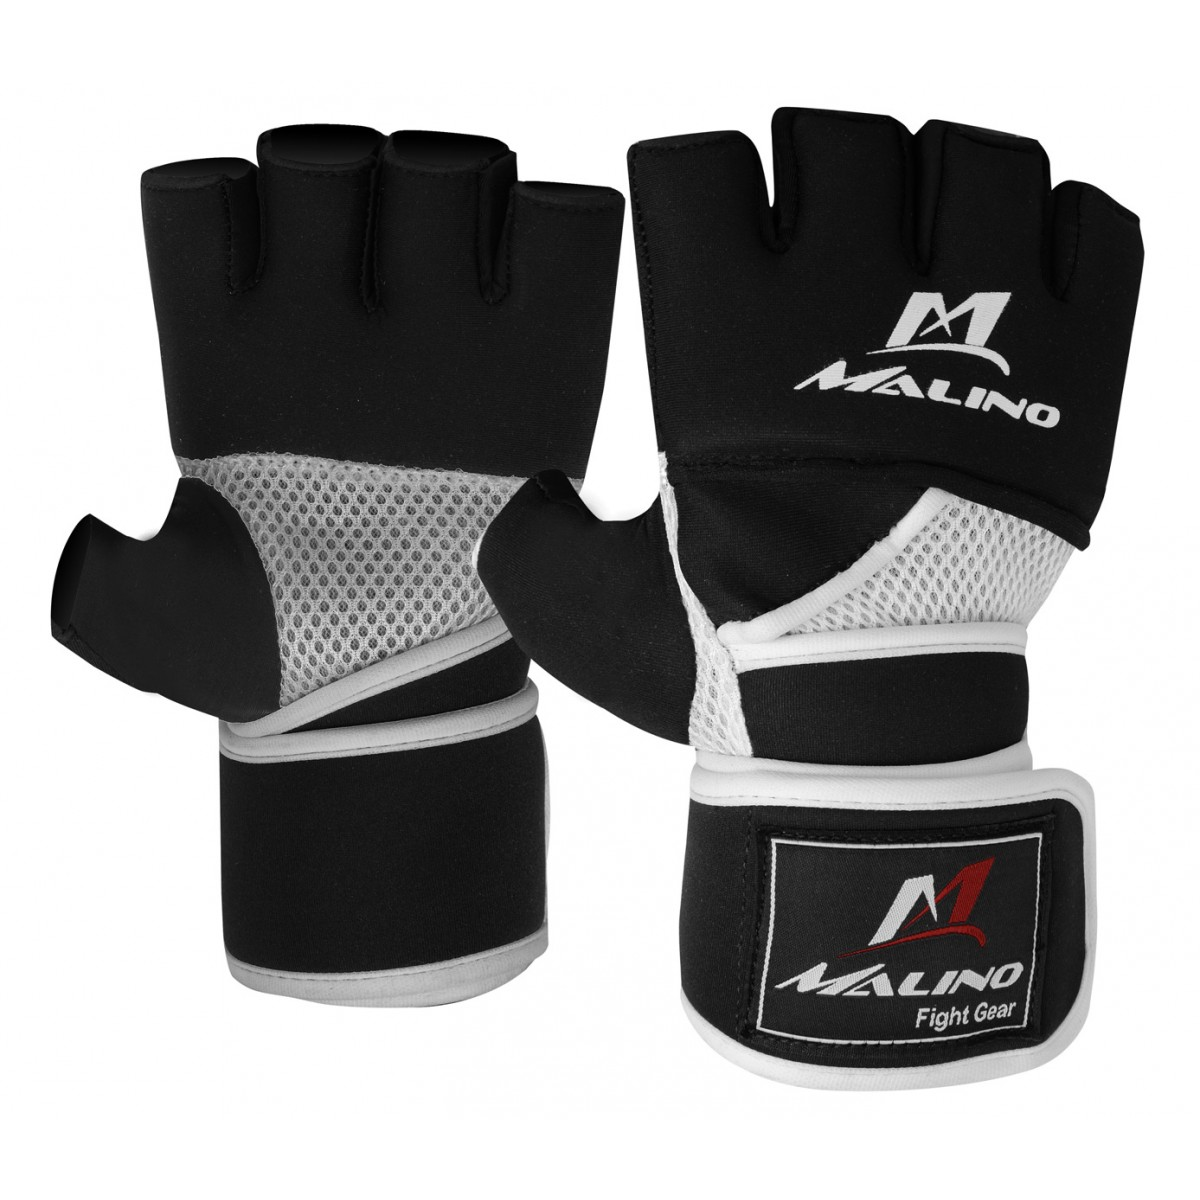 MMA Gloves Half Fingers Mix Martial Arts Gloves Black-White